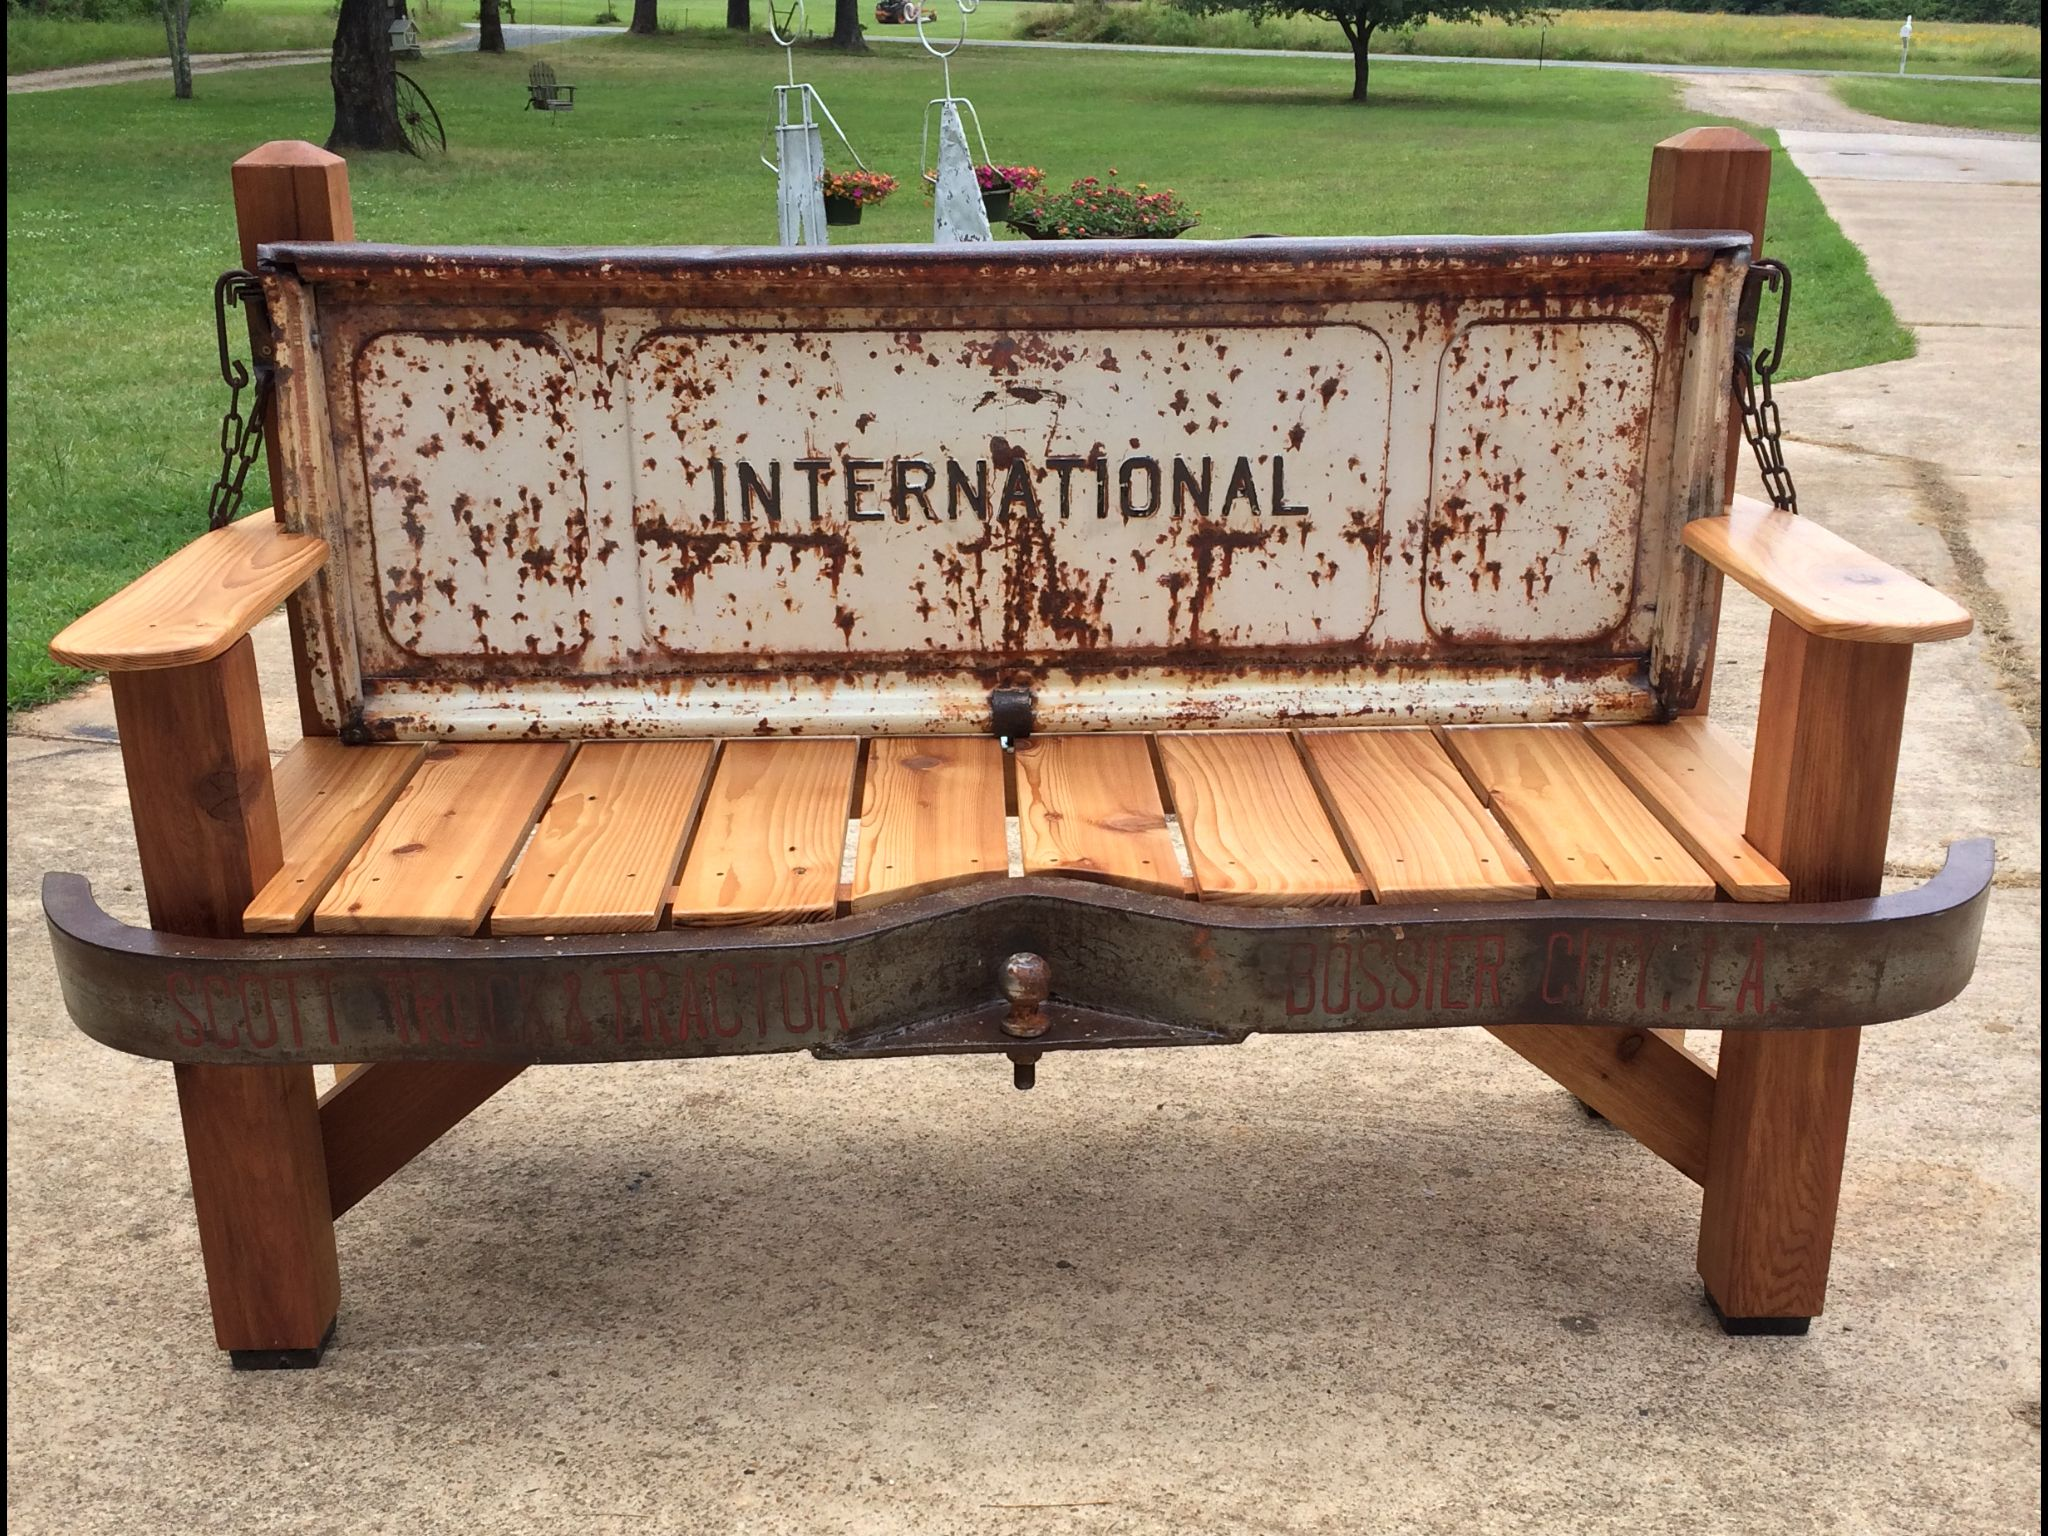 Tailgate Bench Cedar Bench With Old International Tailgate